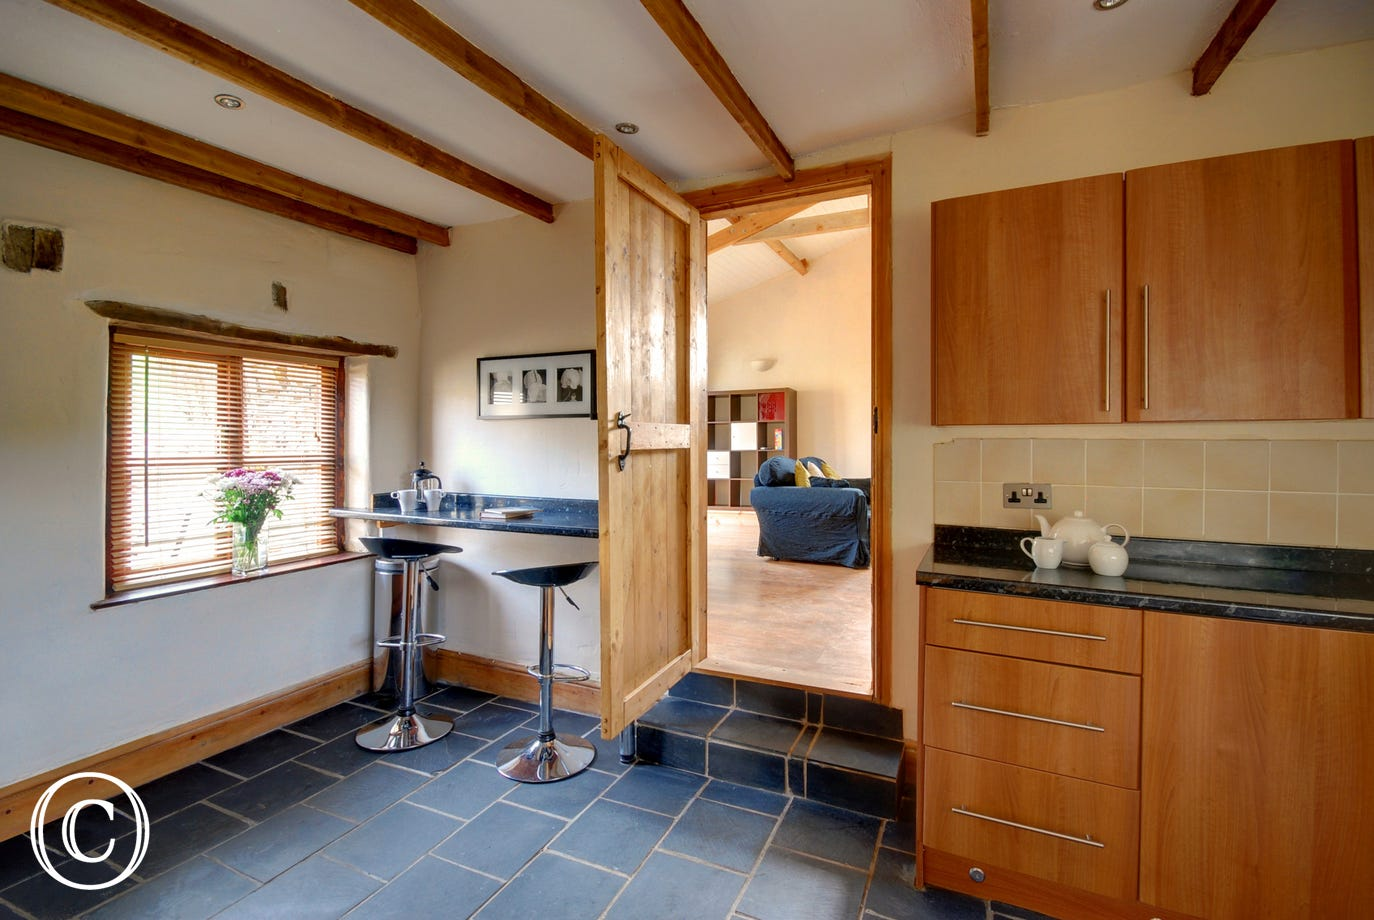 The modern kitchen is well equipped and also has a useful breakfast bar with bar stools